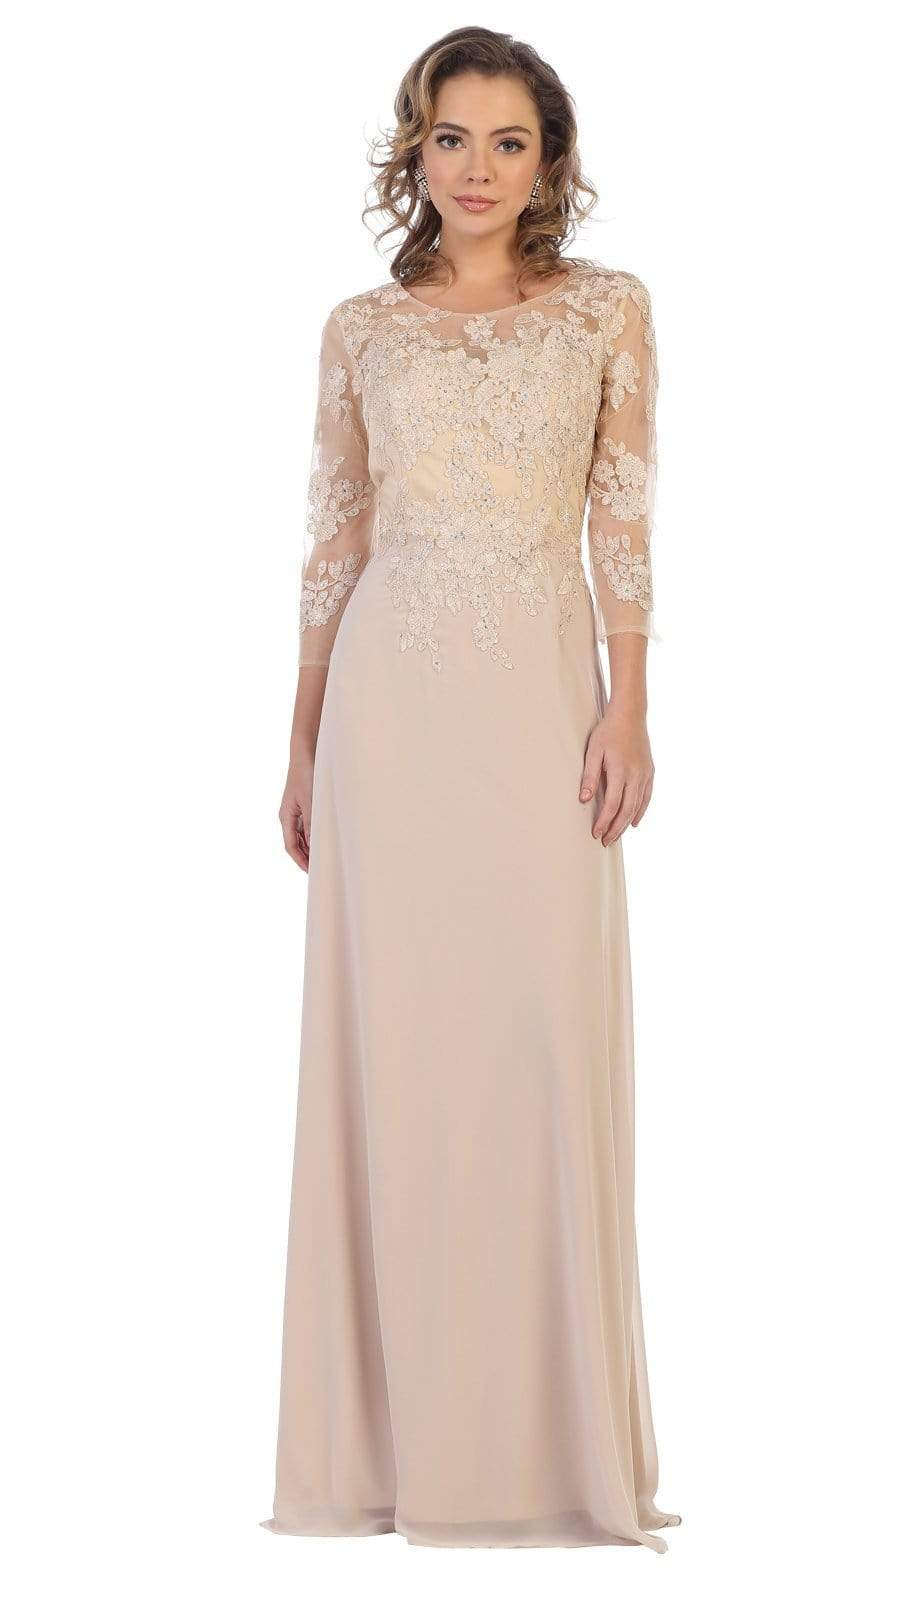 May Queen - MQ1637 Illusion Quarter Sleeve Appliqued Sheath Gown Special Occasion Dress M / Champagne